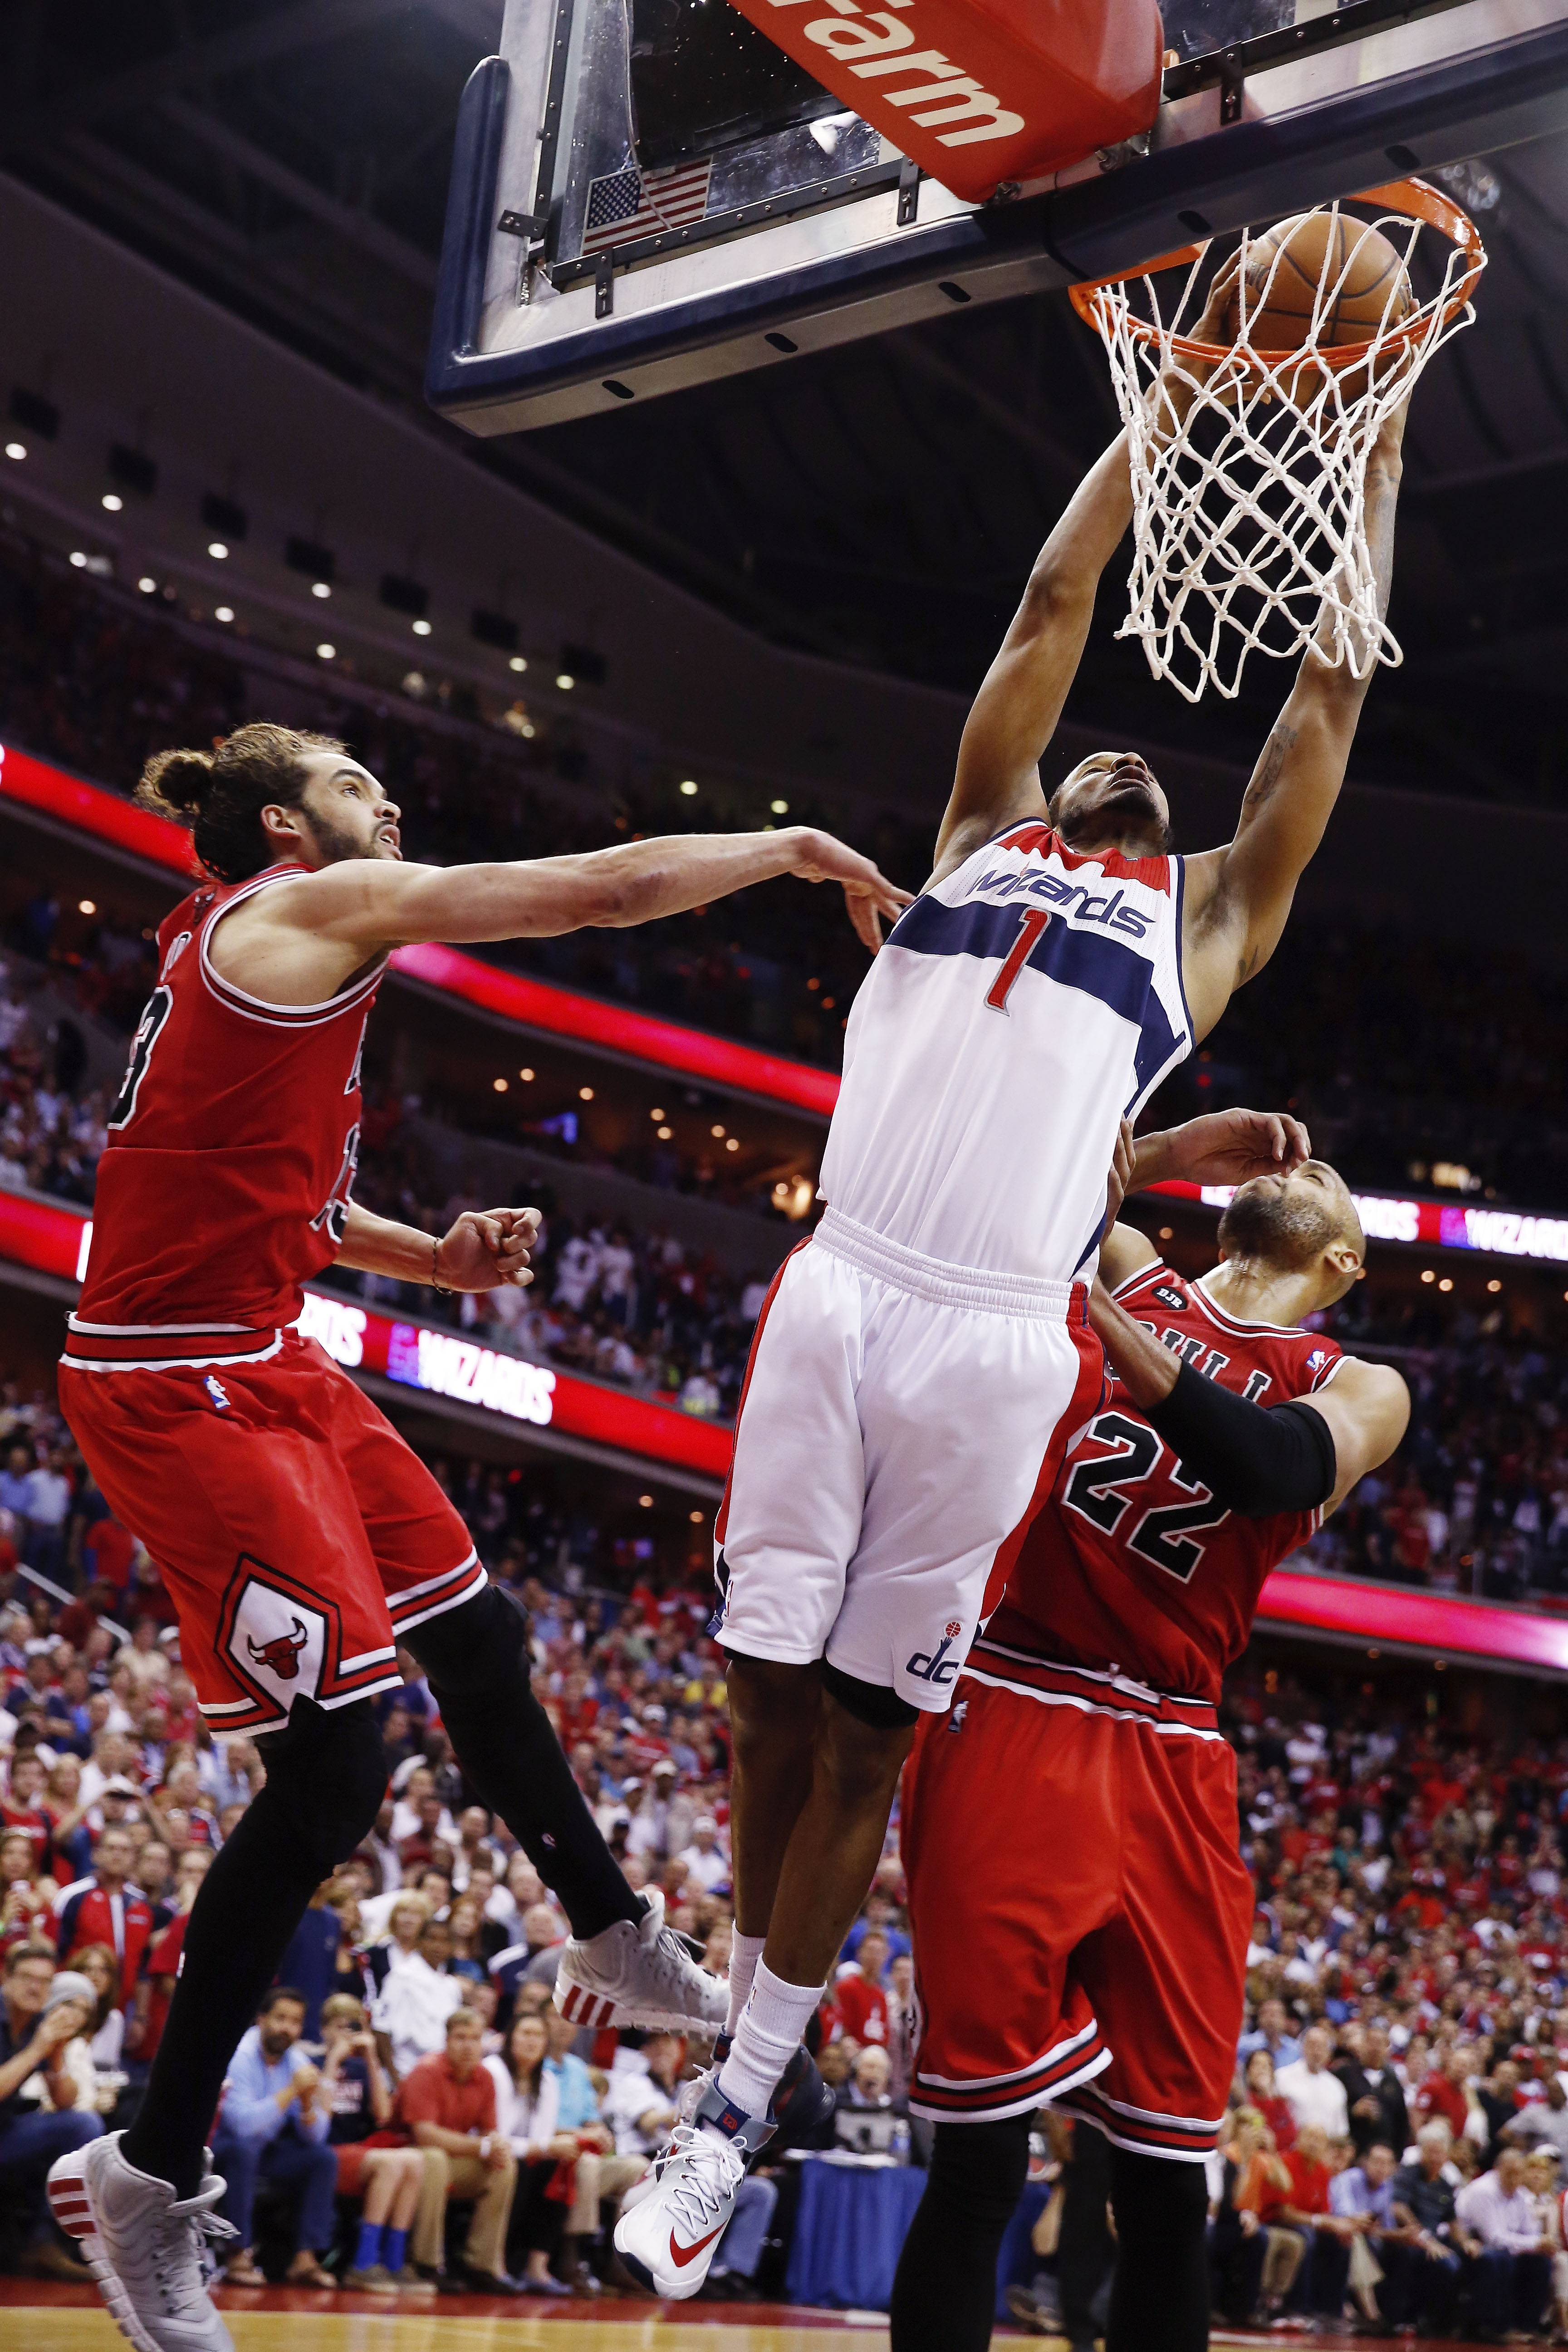 Washington Wizards forward Trevor Ariza (1) dunks the ball between Chicago Bulls center Joakim Noah, left, and forward Taj Gibson (22) during the second half. The Wizards defeated the Bulls 98-89.